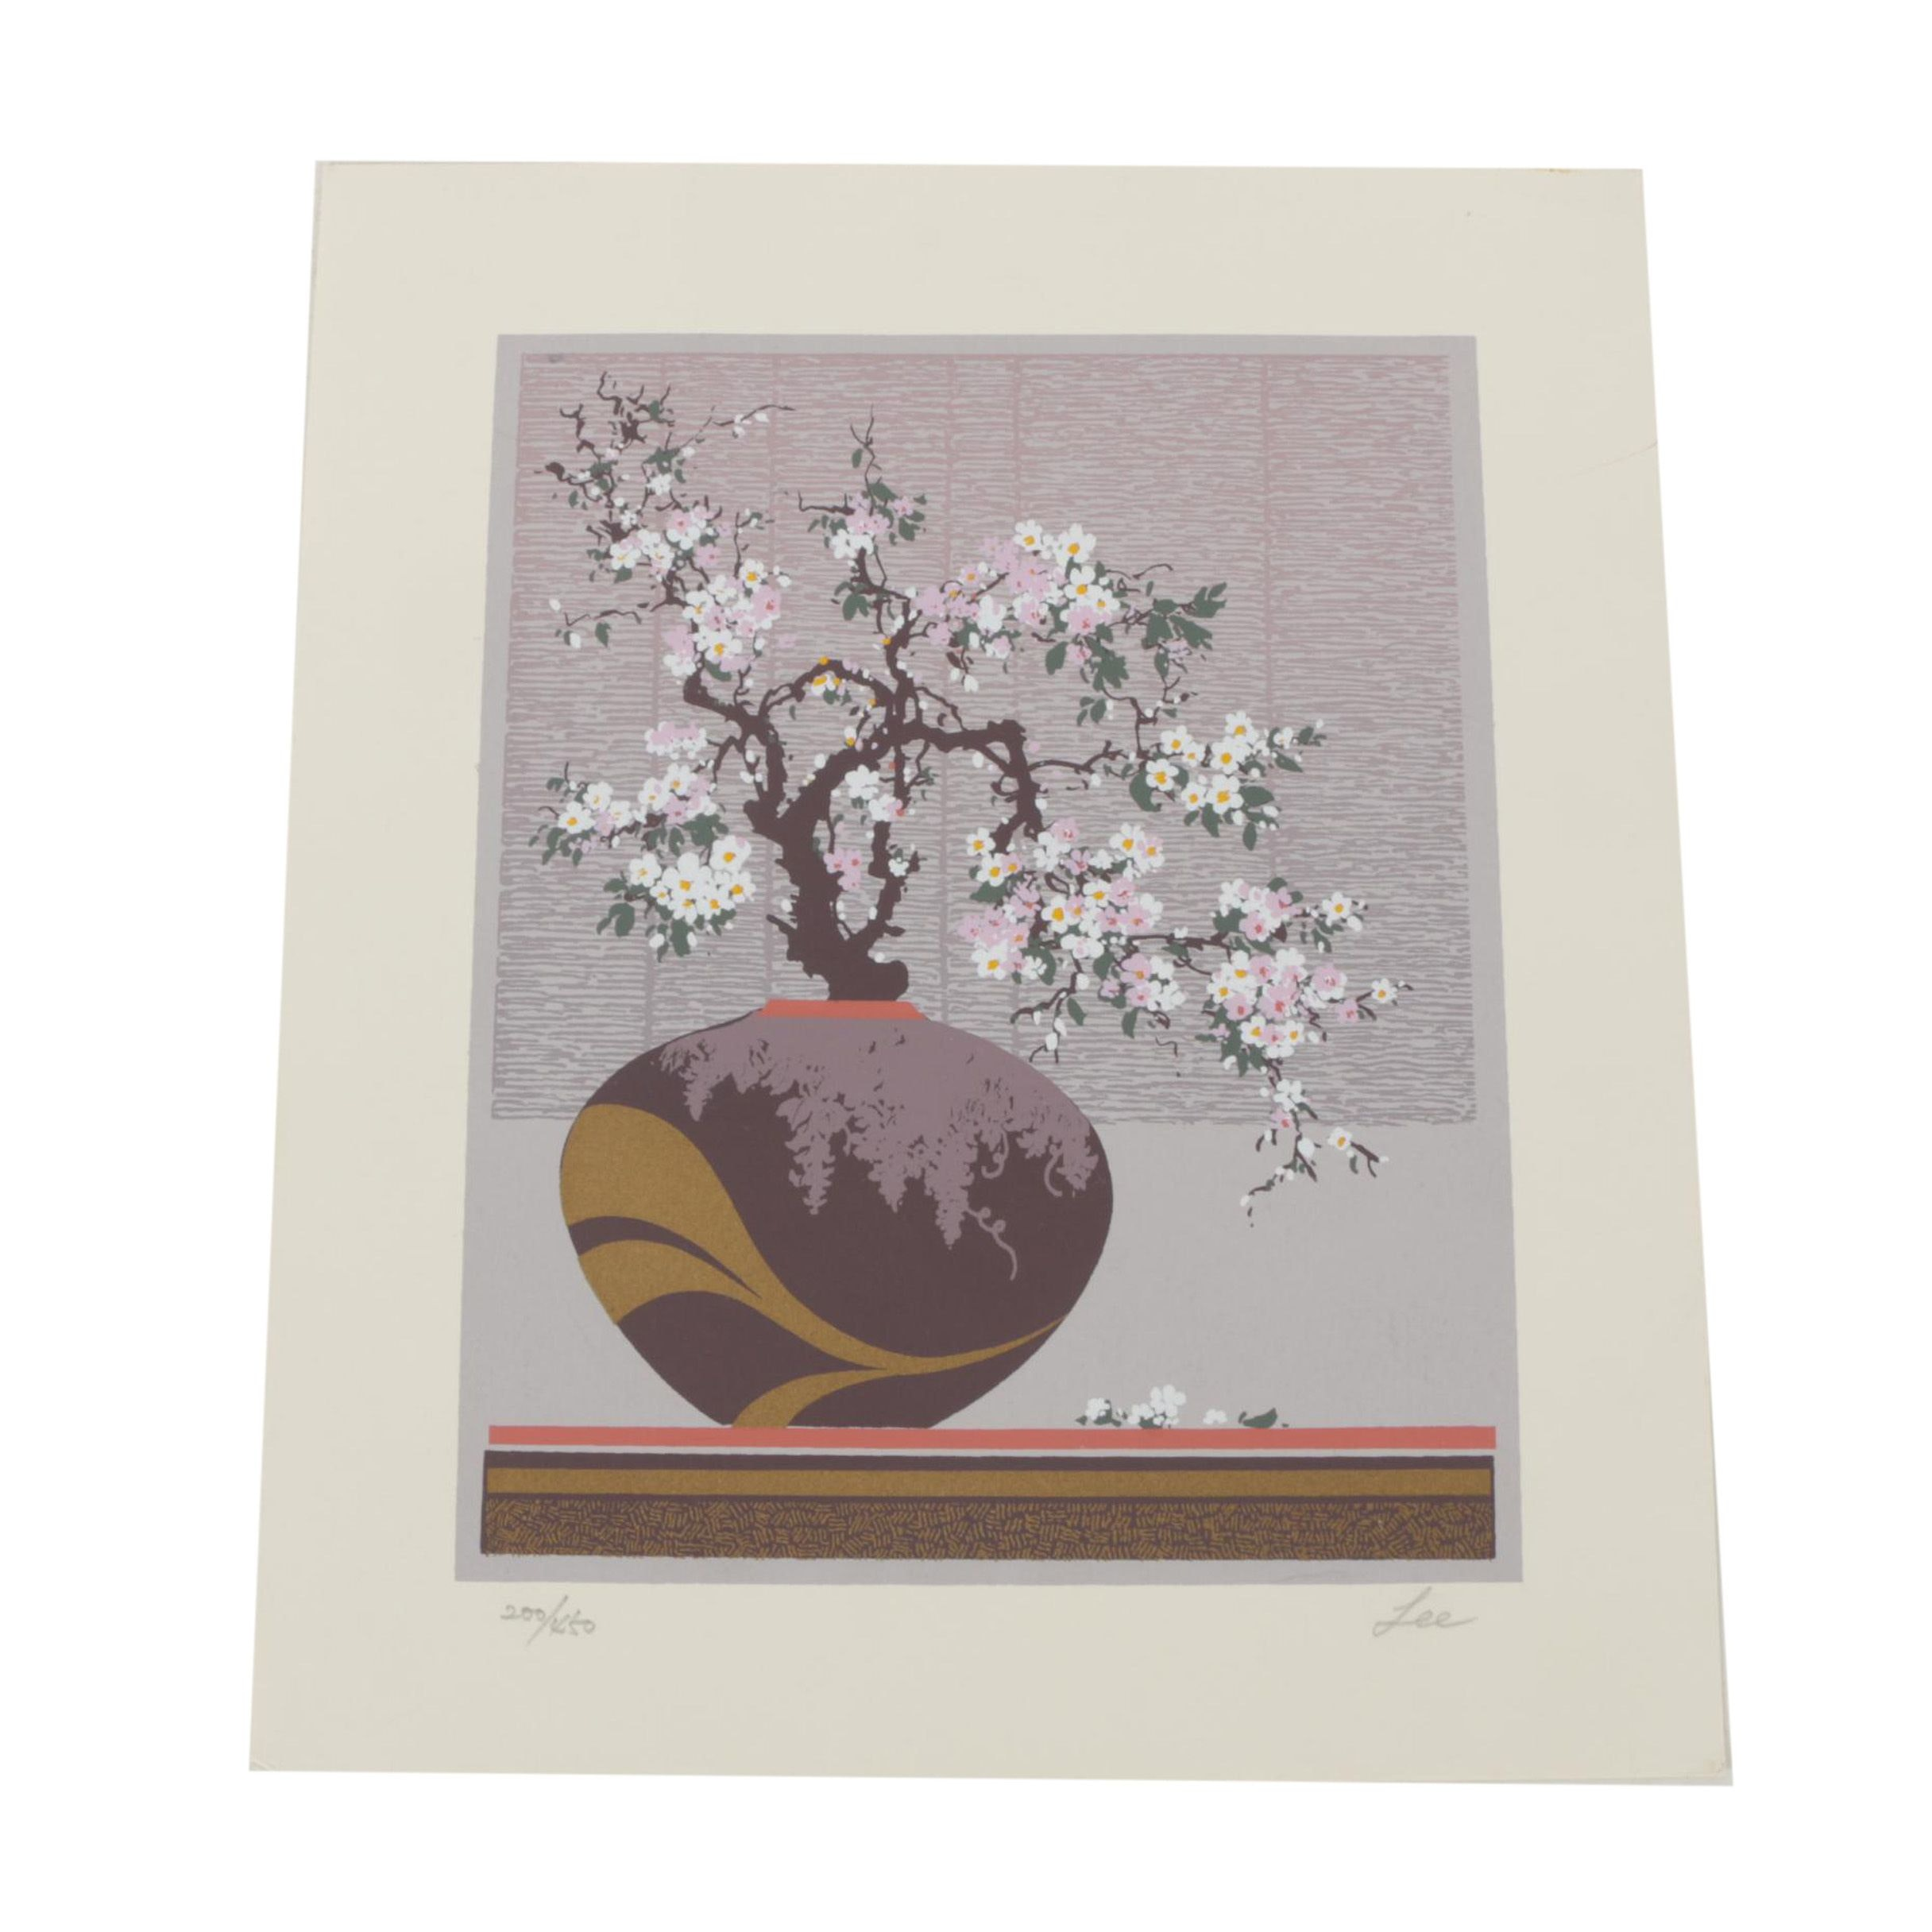 Lee Limited Edition Serigraph on Paper of a Still Life